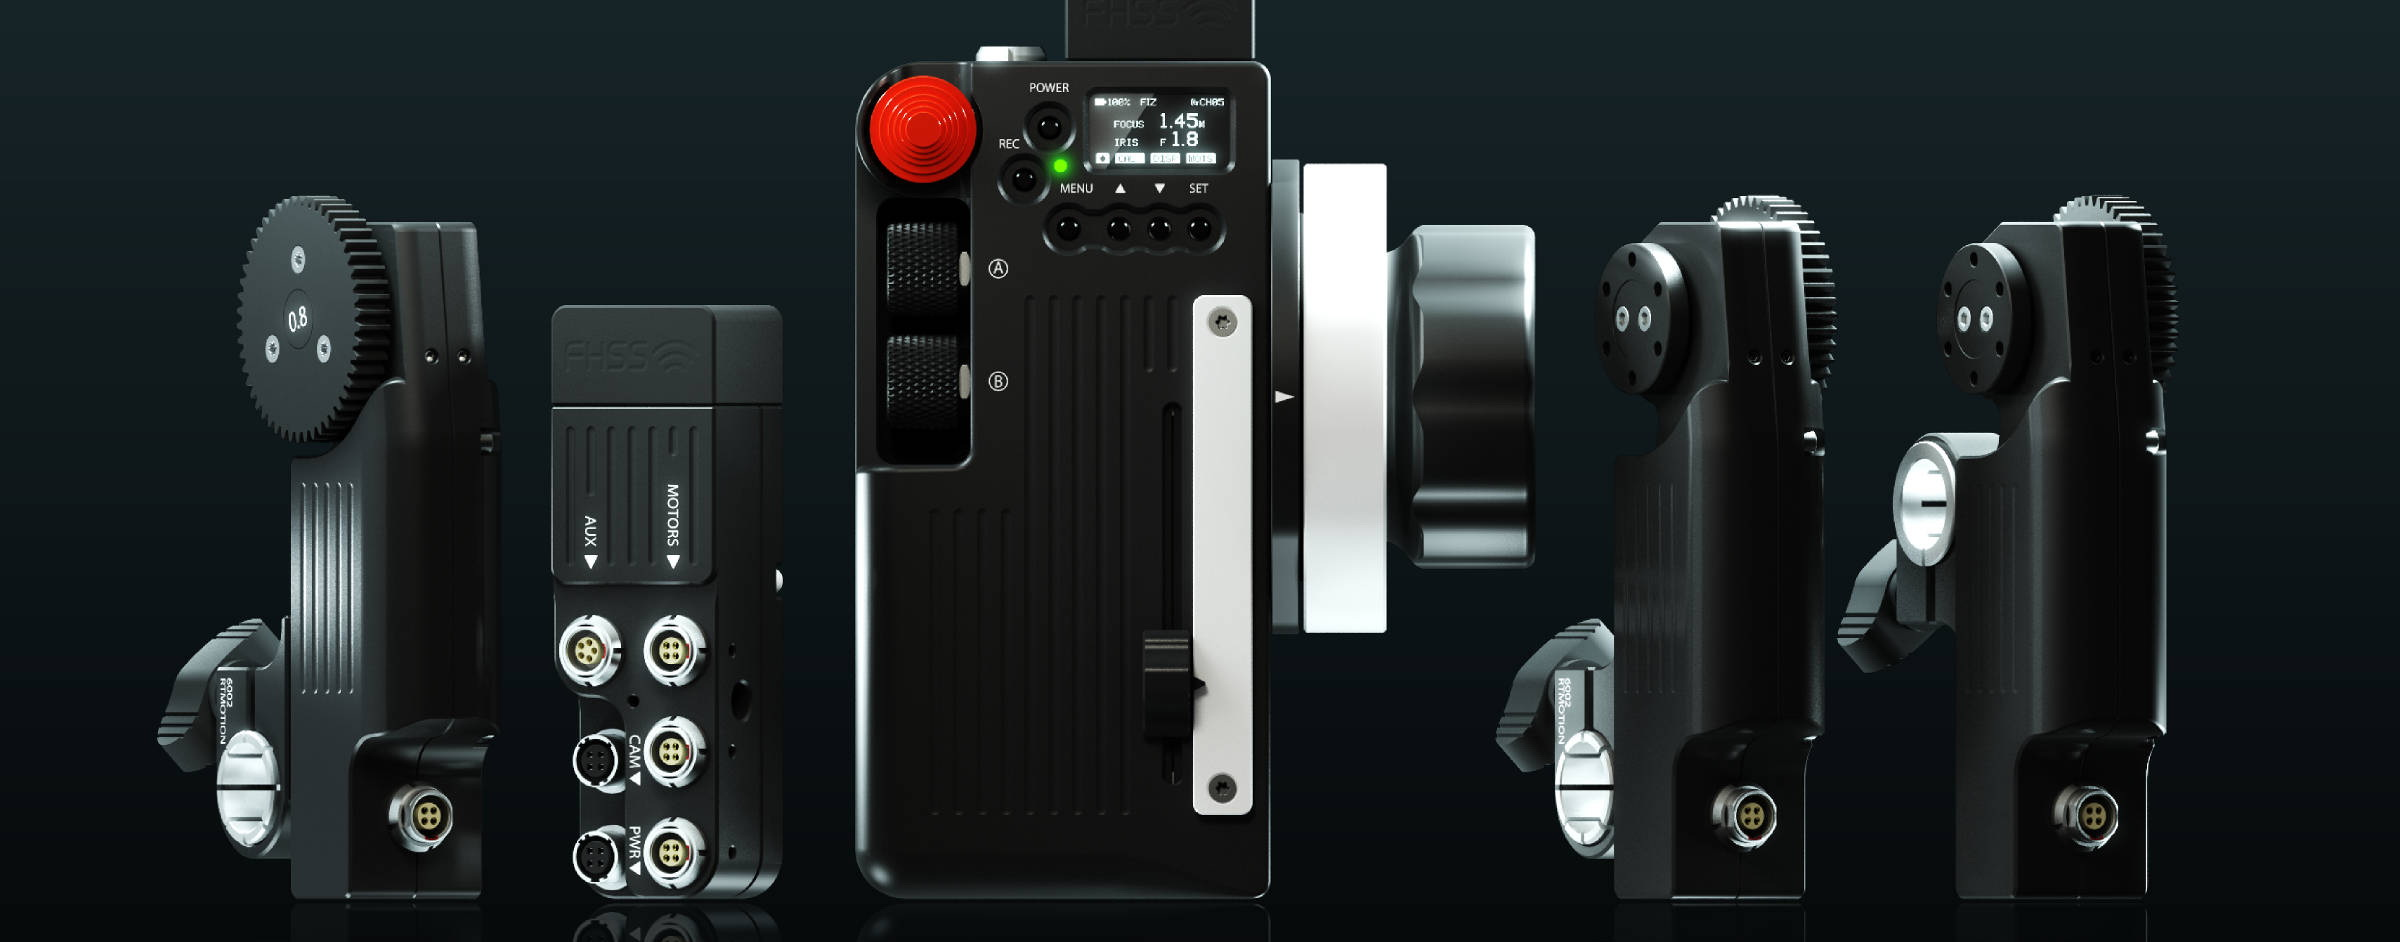 New RT Motion Lens Control System - available for rental